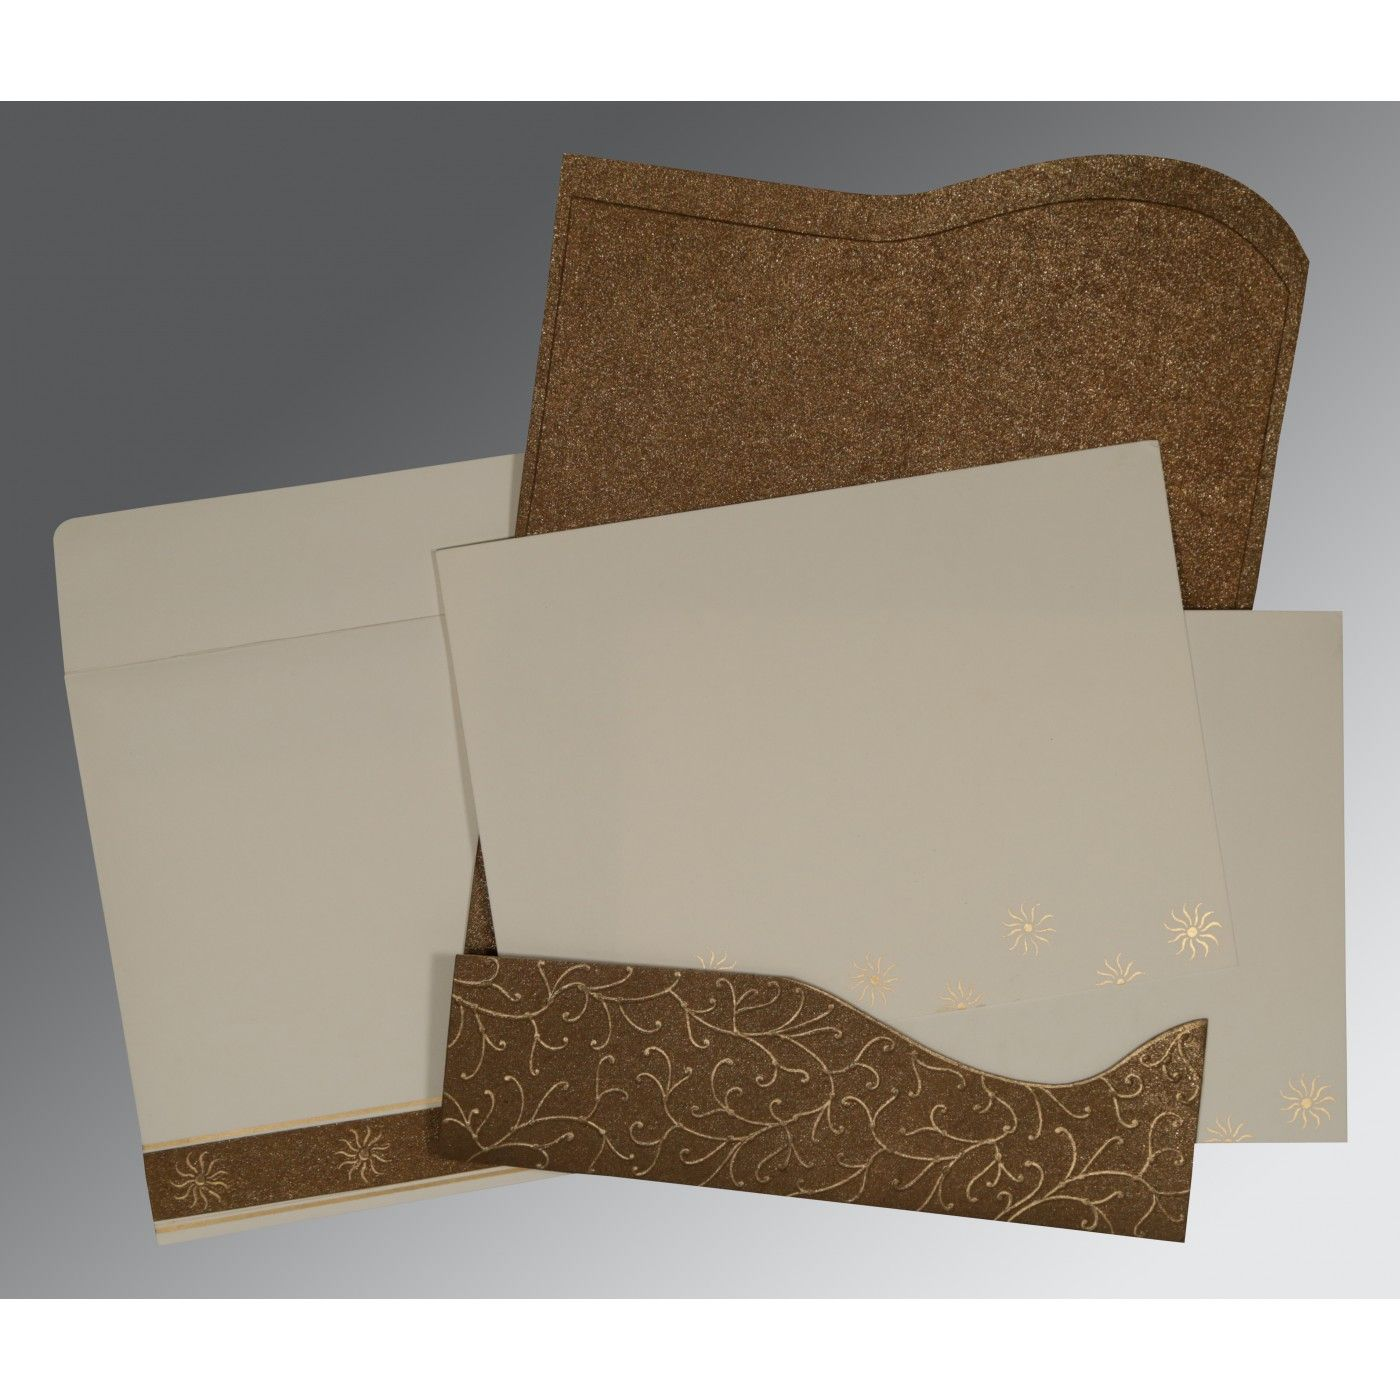 BROWN HANDMADE SHIMMER EMBOSSED WEDDING CARD : CD-1405 - IndianWeddingCards